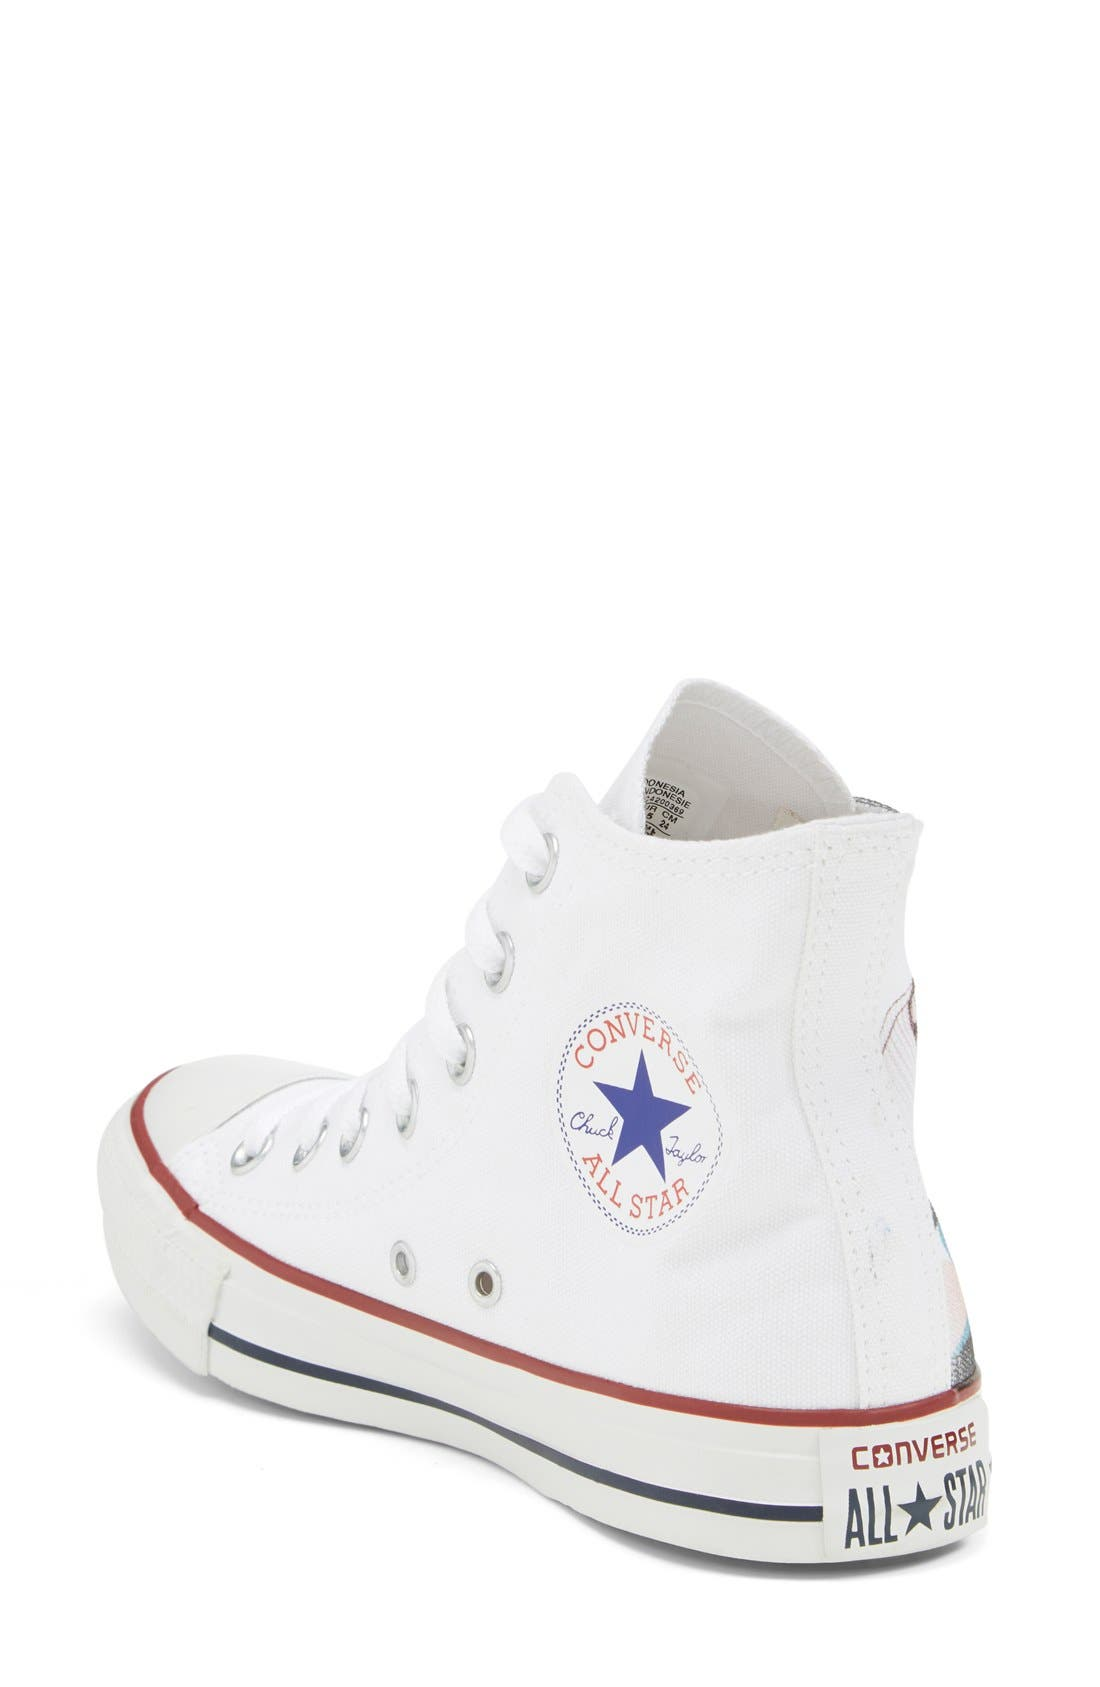 Chuck Taylor<sup>®</sup> All Star<sup>®</sup> 'Made By You - San Francisco' High Top Sneaker,                             Alternate thumbnail 3, color,                             102